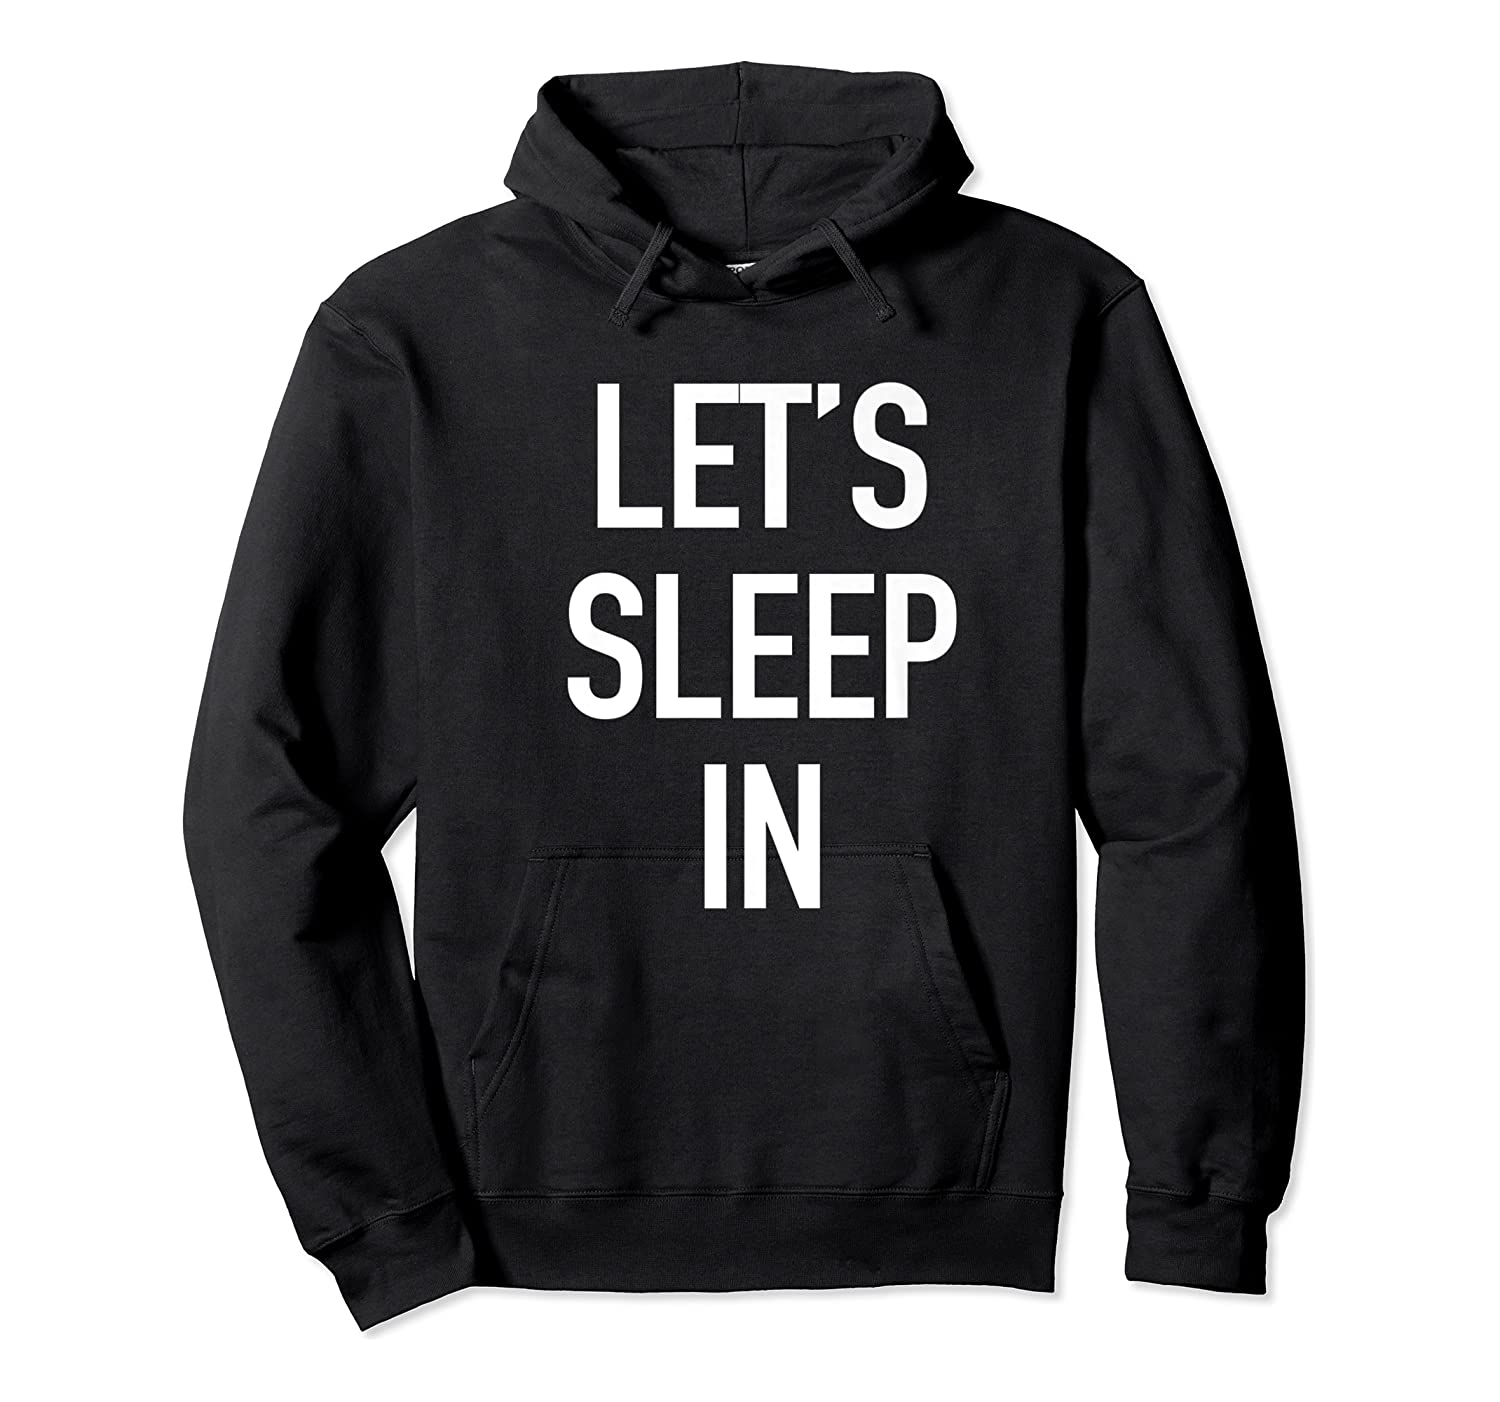 Lets Sleep In - Funny Lazy Day Pajama Quote T-shirt Unisex Pullover Hoodie